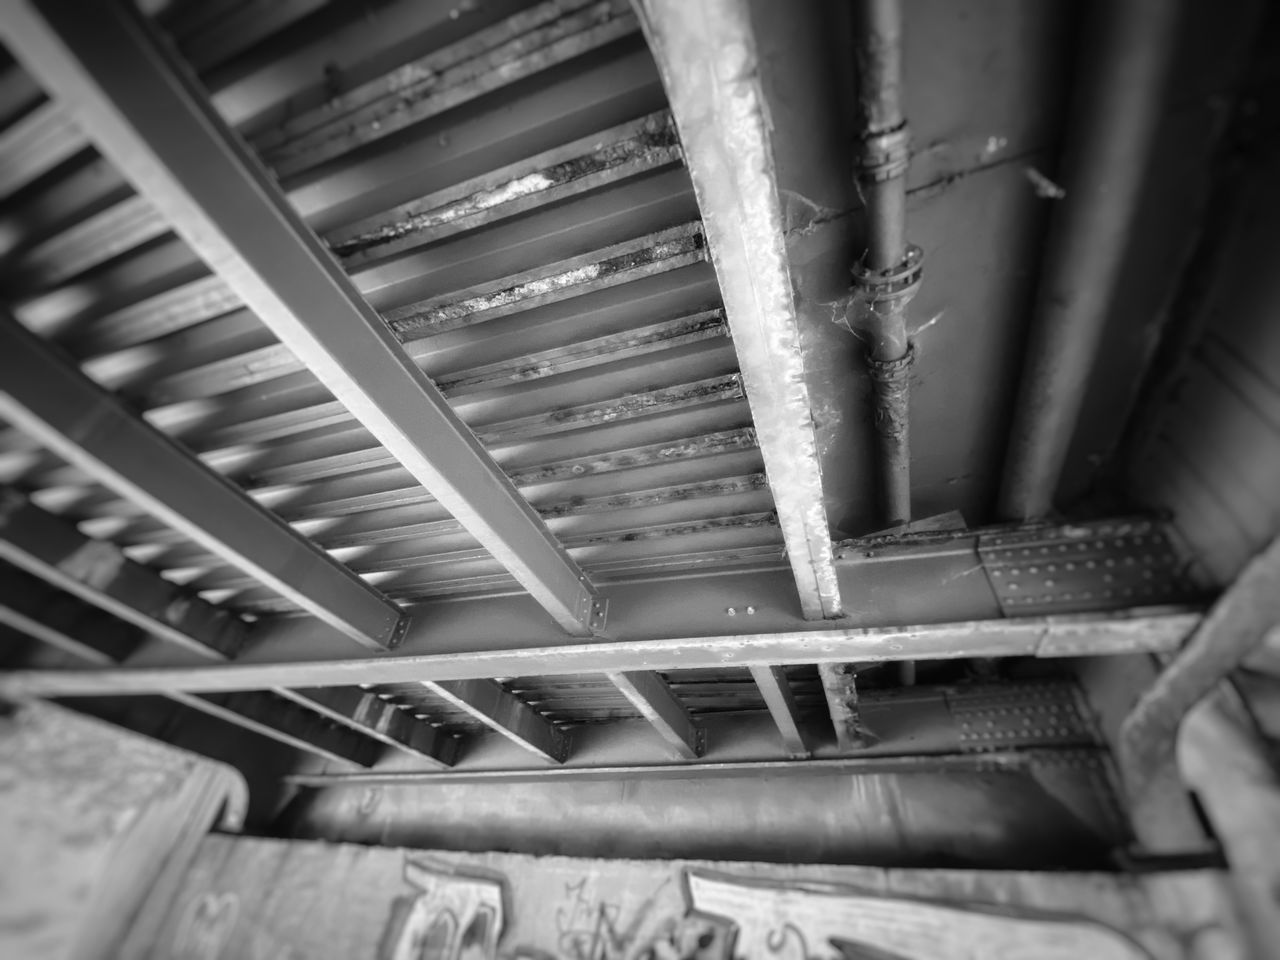 LOW ANGLE VIEW OF CEILING OF STAIRCASE